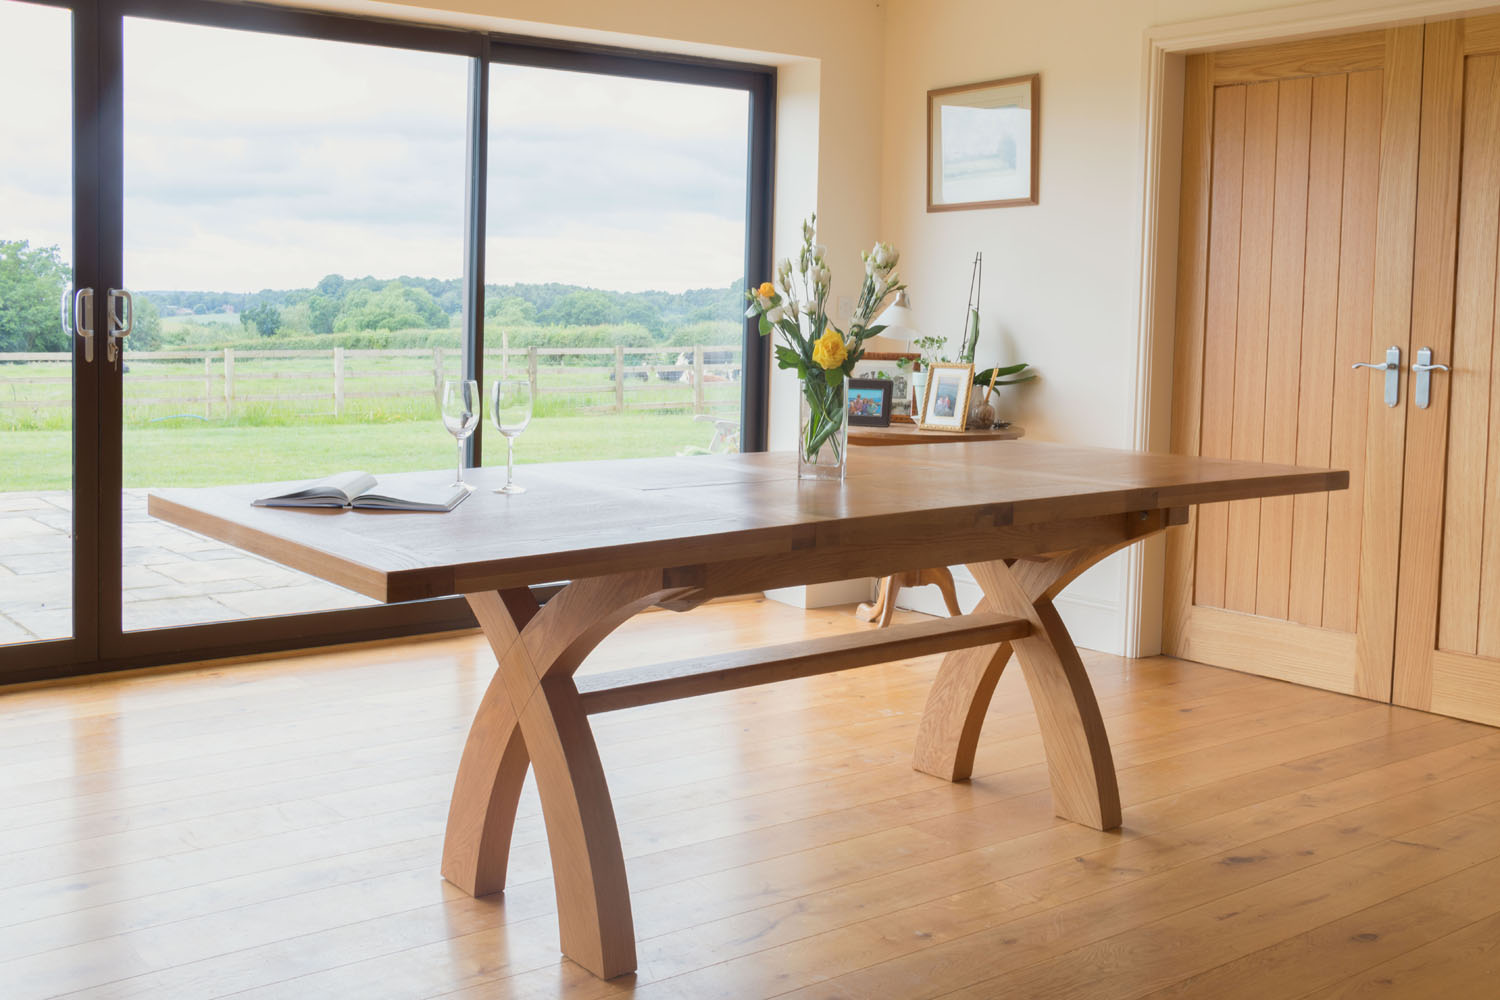 Country Oak 10 seater oak dining table from Top Furniture